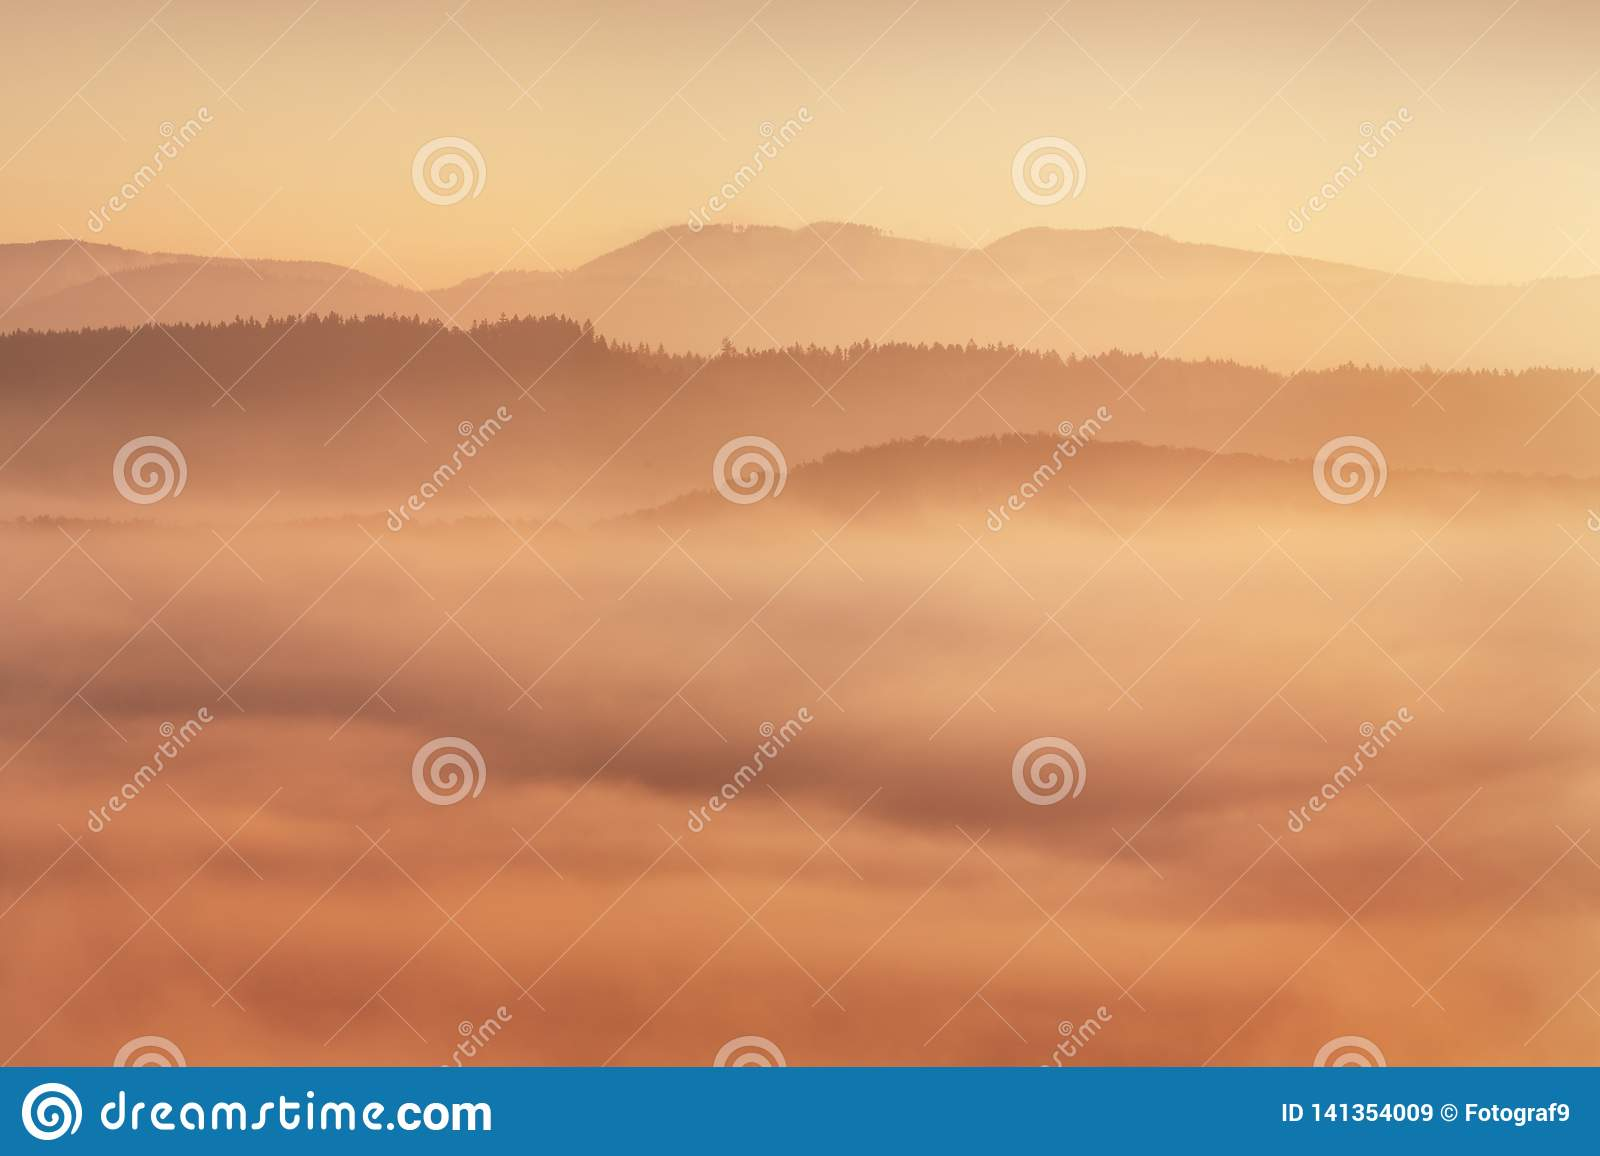 Sunrise Over Misty Landscape. Scenic View Of Foggy Morning Sky With Rising Sun Above Misty Forest. Middle Summer Nature Of Europe.